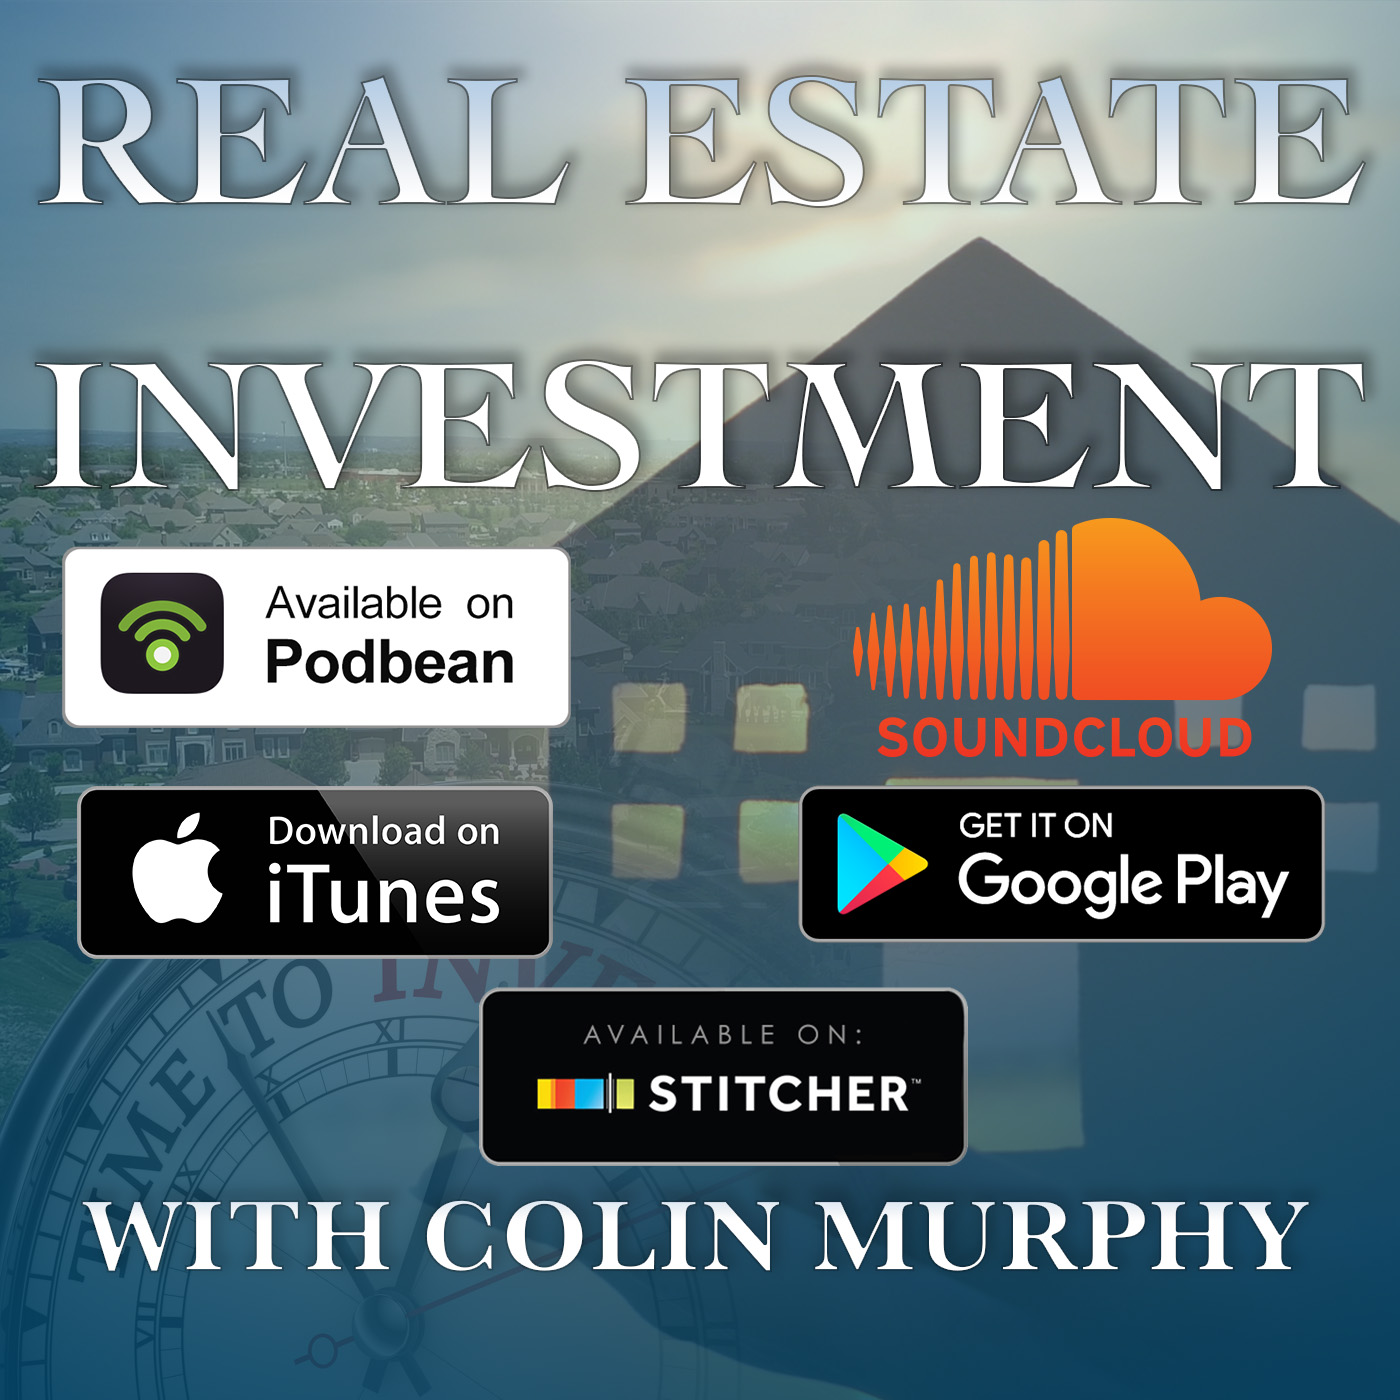 Podcast 31: Kathy Fettke of the Real Wealth Network